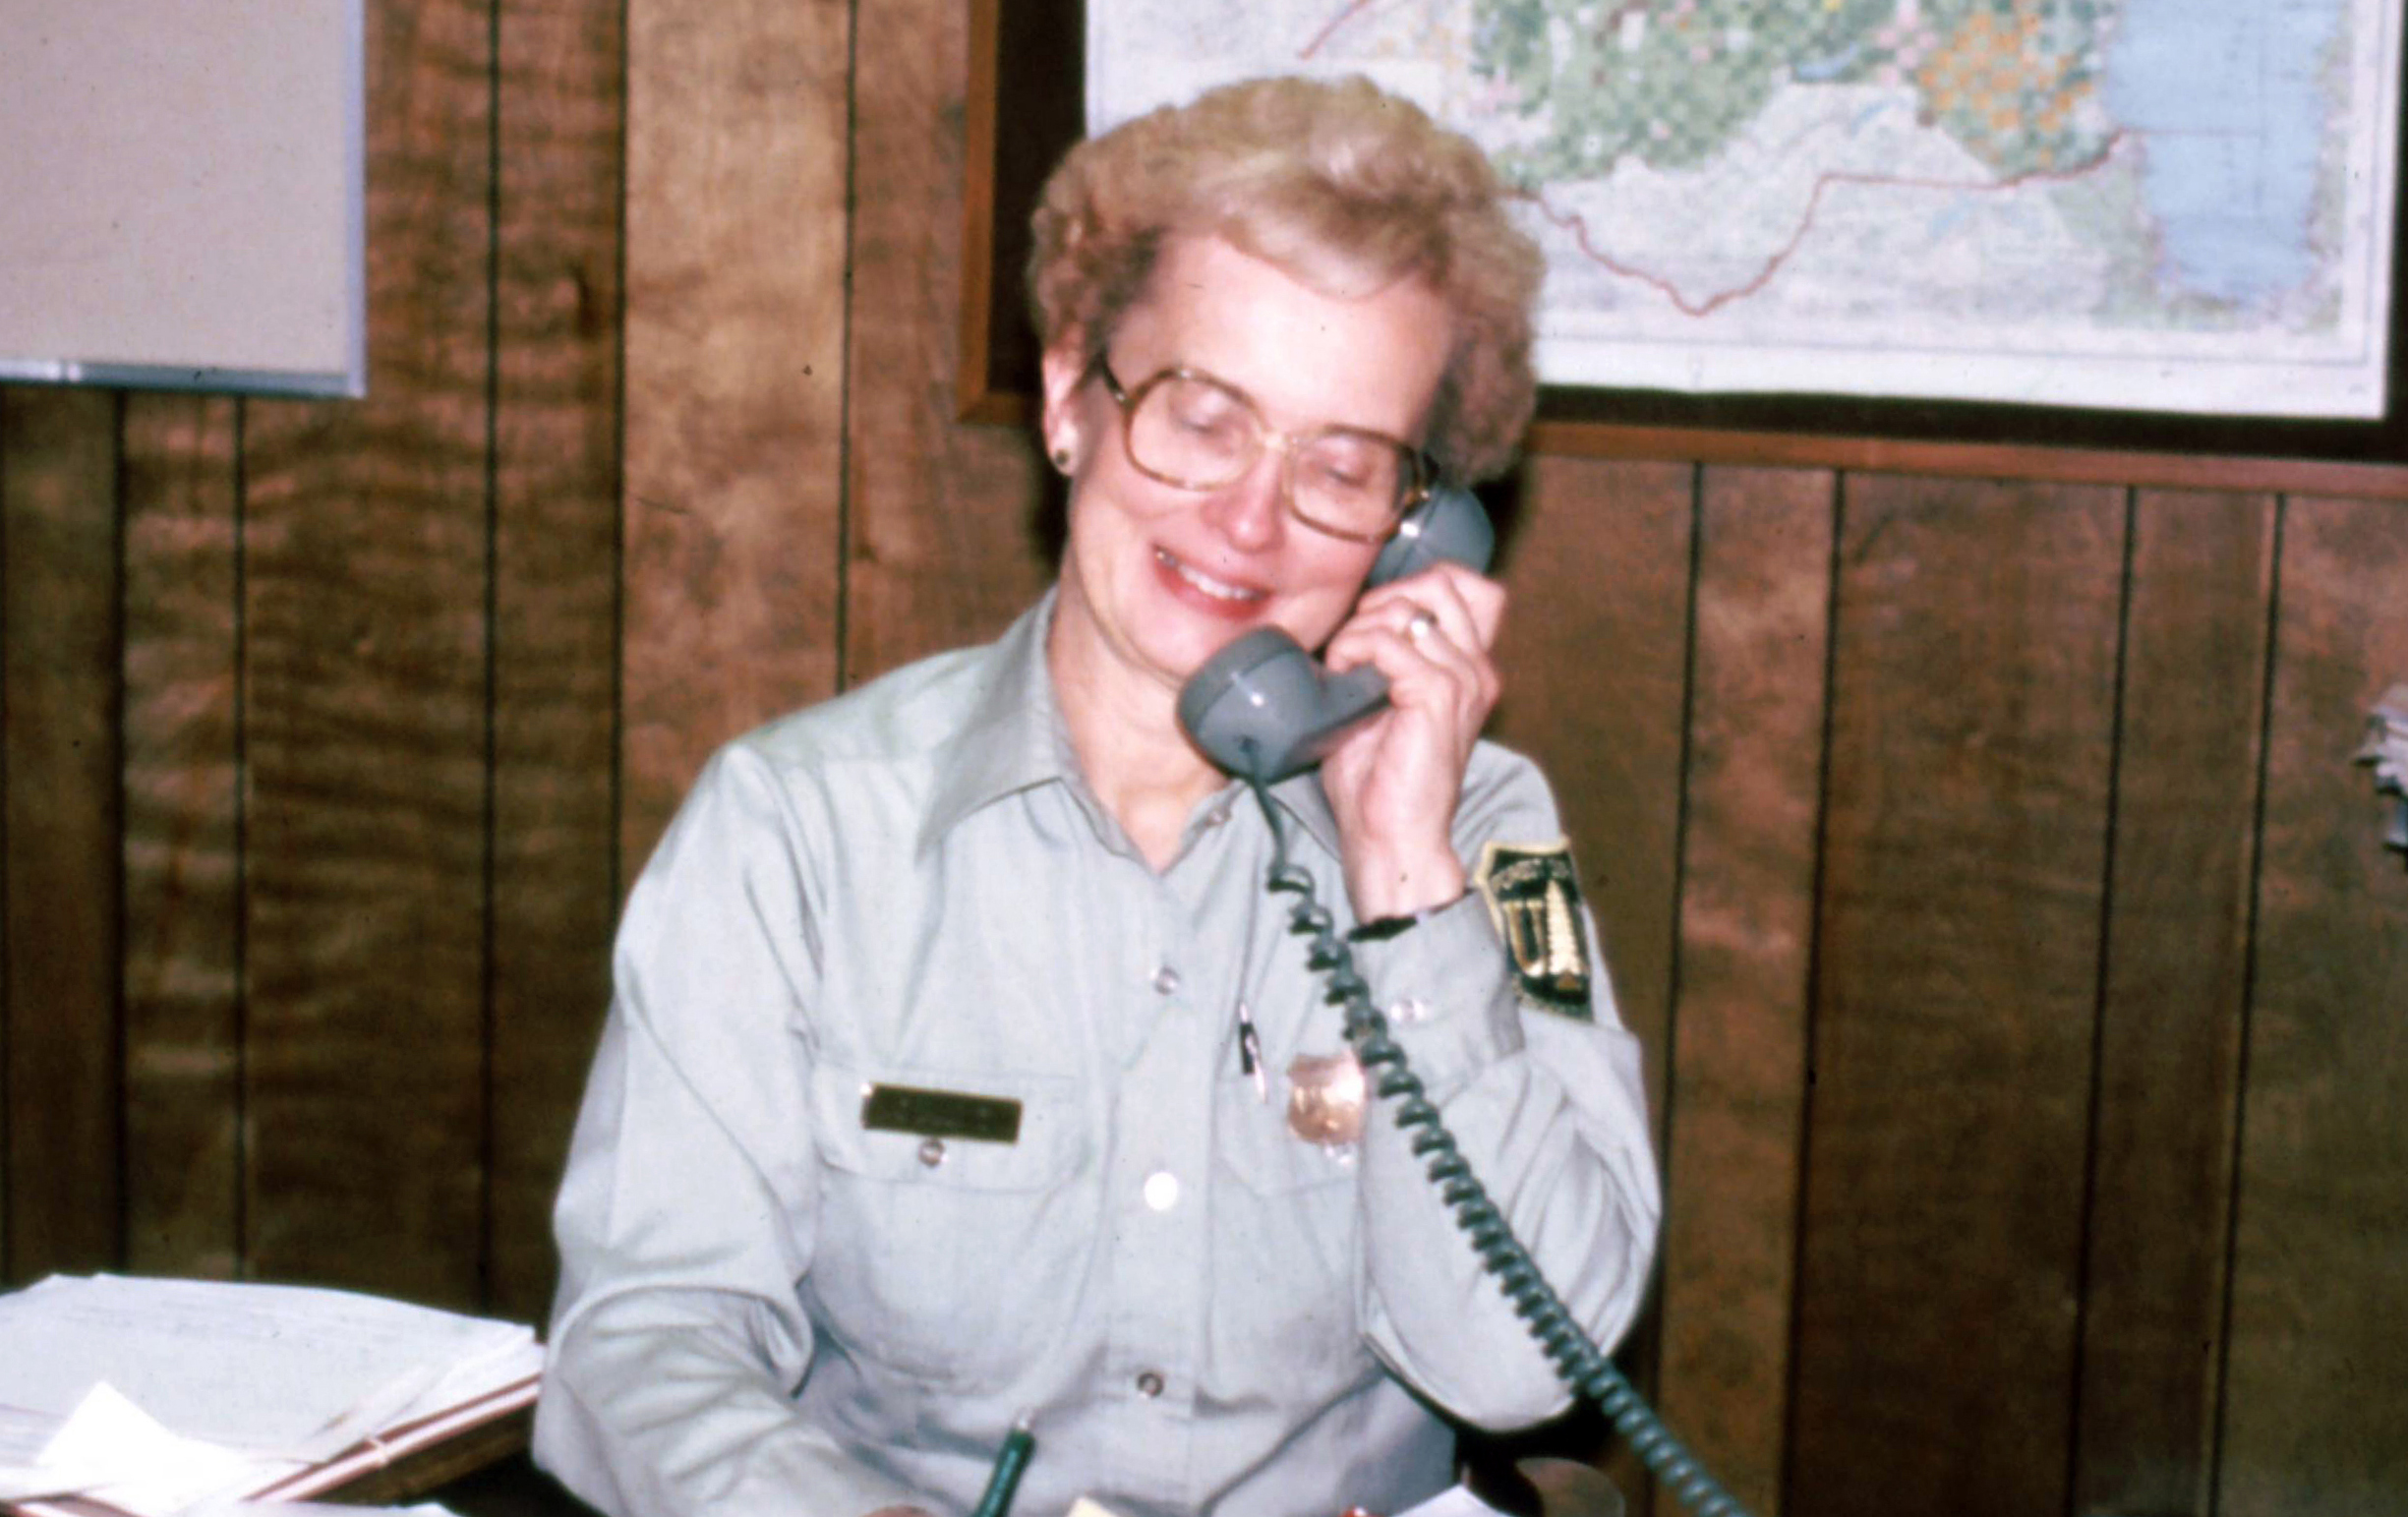 Geri Bergen sitting at a desk with papers around her. She is on the phone.